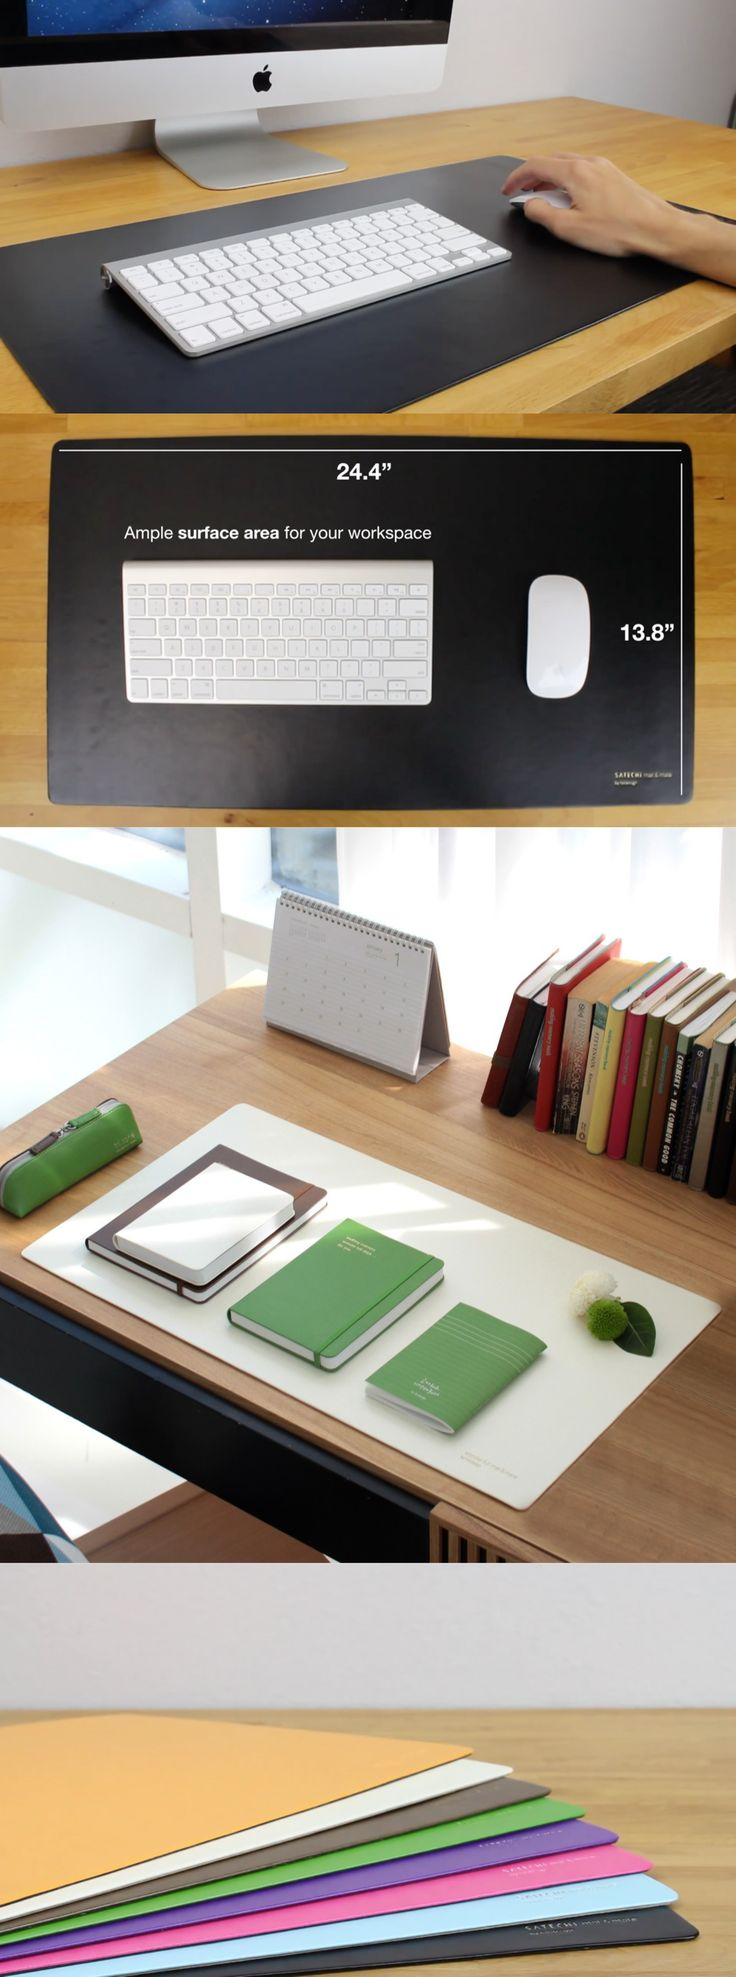 Satechi Desk Mat & Mate (Cream White). The Satechi Desk Mat & Mate desk pad covers a wide area of your desk to protect your work surface from scratches, spills, and every day wear. Perfect for use as a reading and writing surface or as a mouse pad, the Desk Mat & Mate is easy to clean and is large enough to fit a keyboard and mouse.